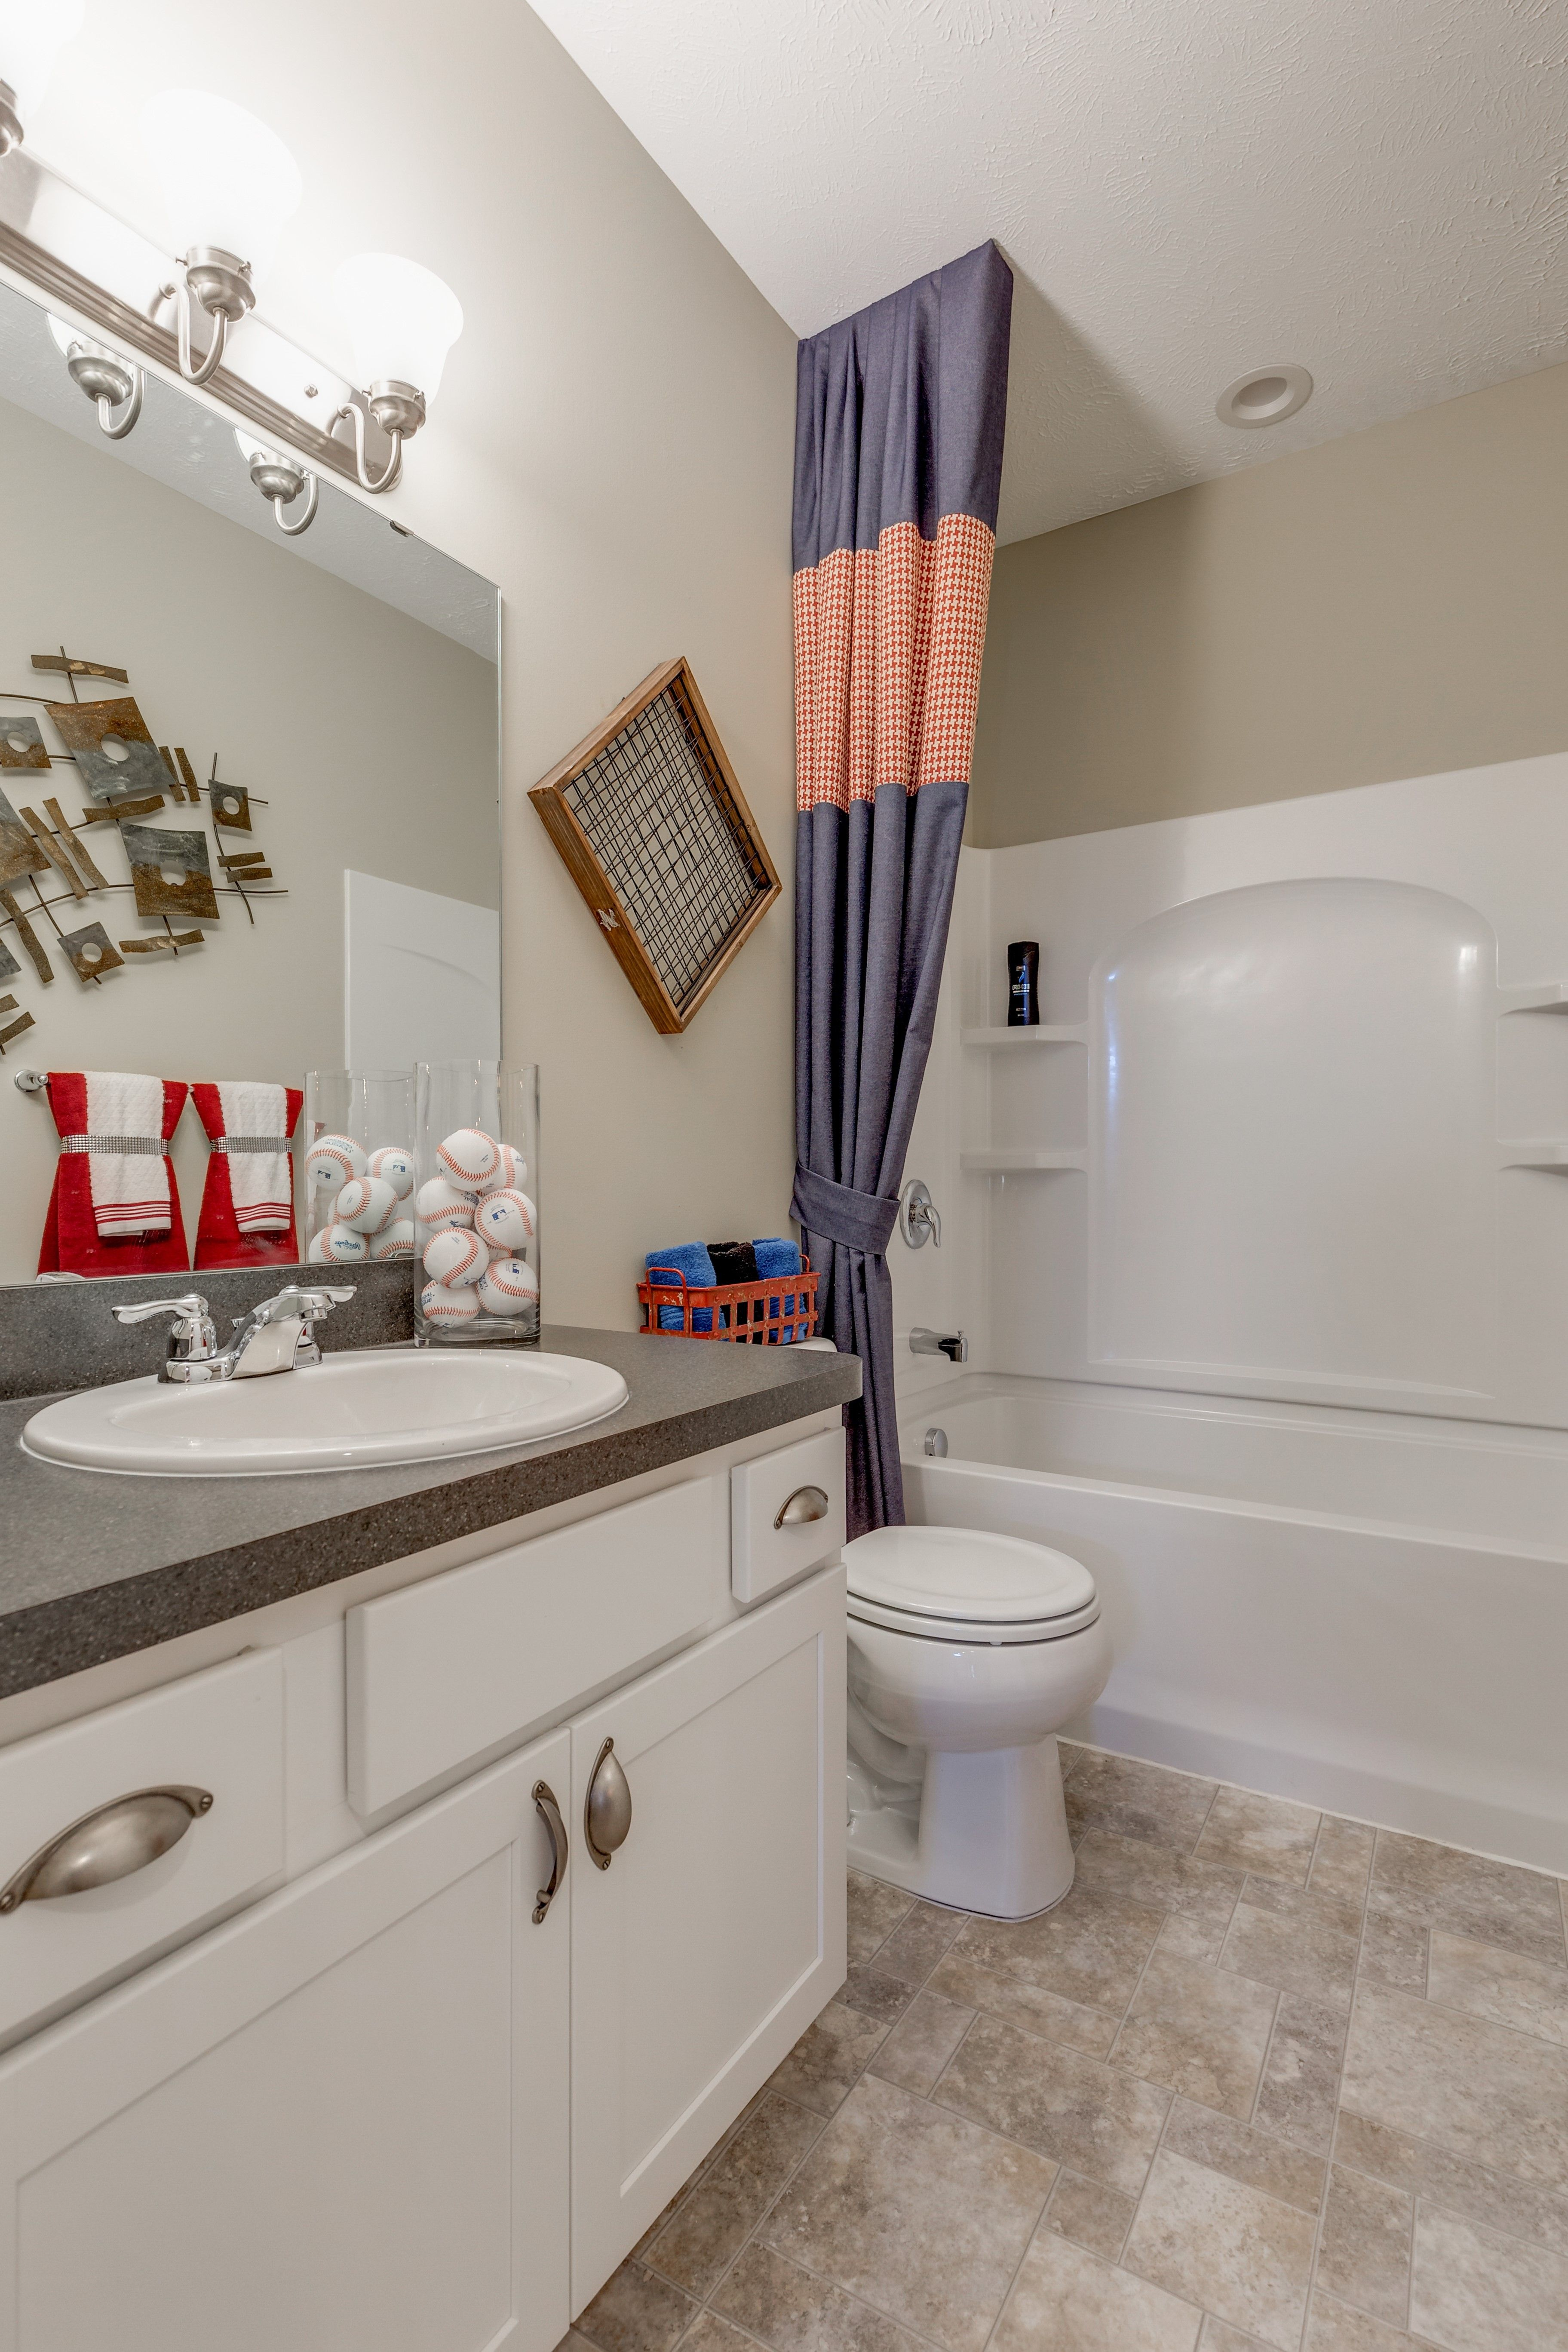 Bathroom featured in the Appleton - 3-Car Garage By K. Hovnanian® Homes in Cleveland, OH